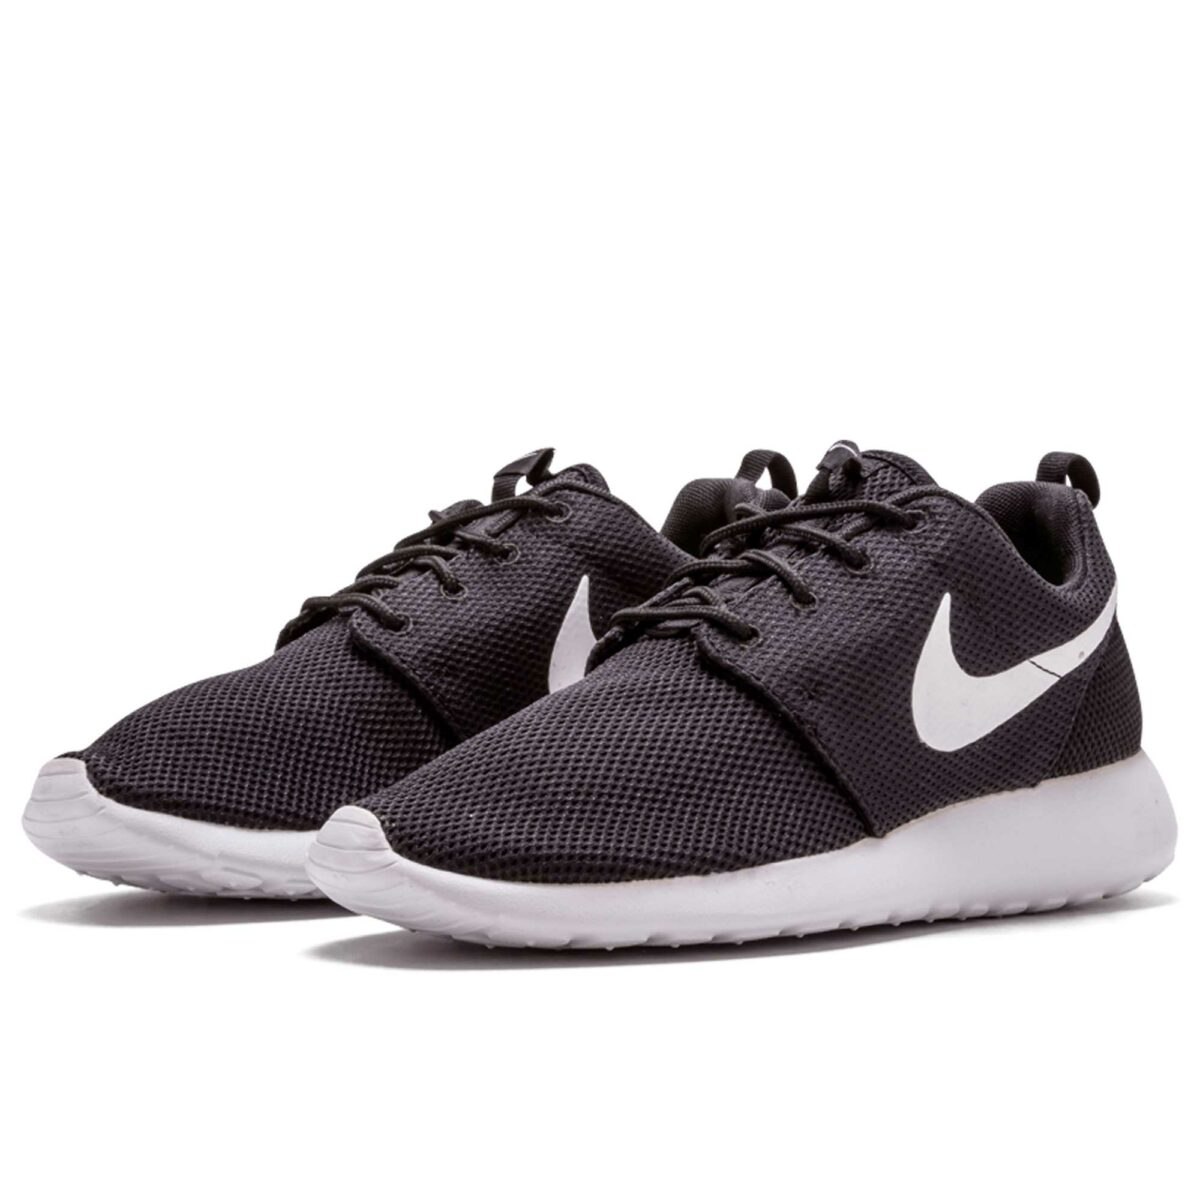 nike roshe run black white 511882_019 купить